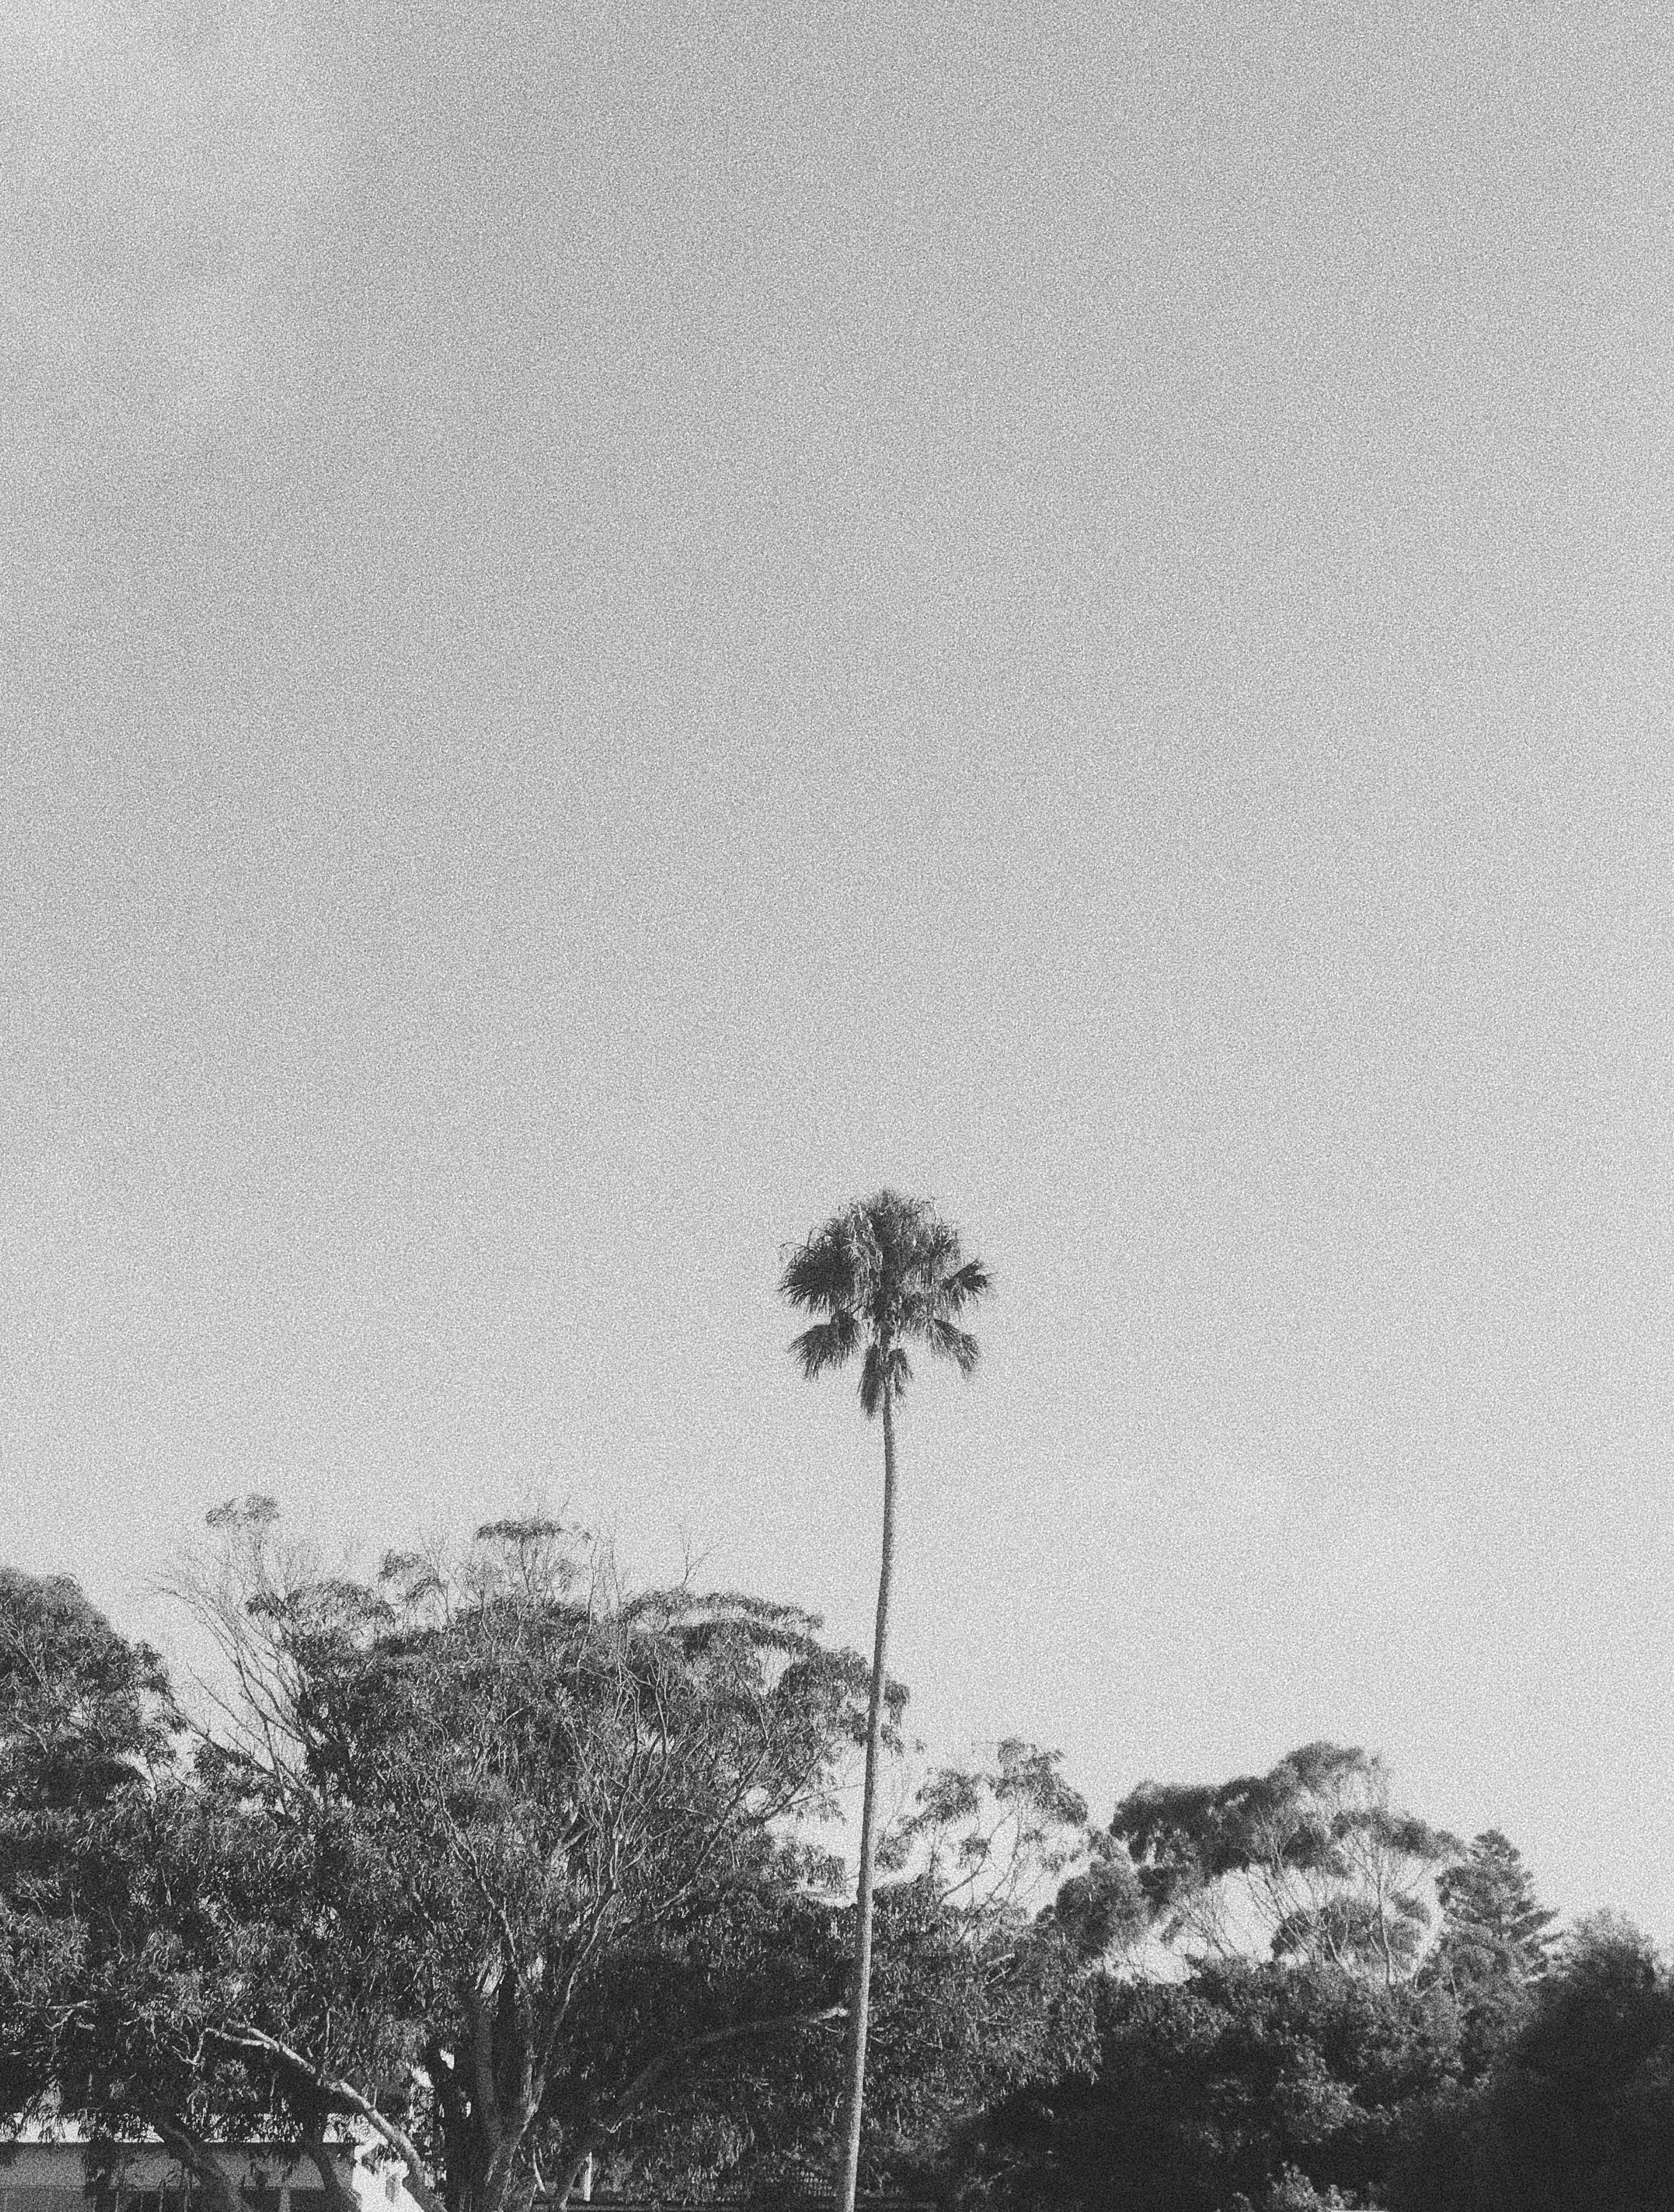 Lucy Laucht black and white photo of palm tree